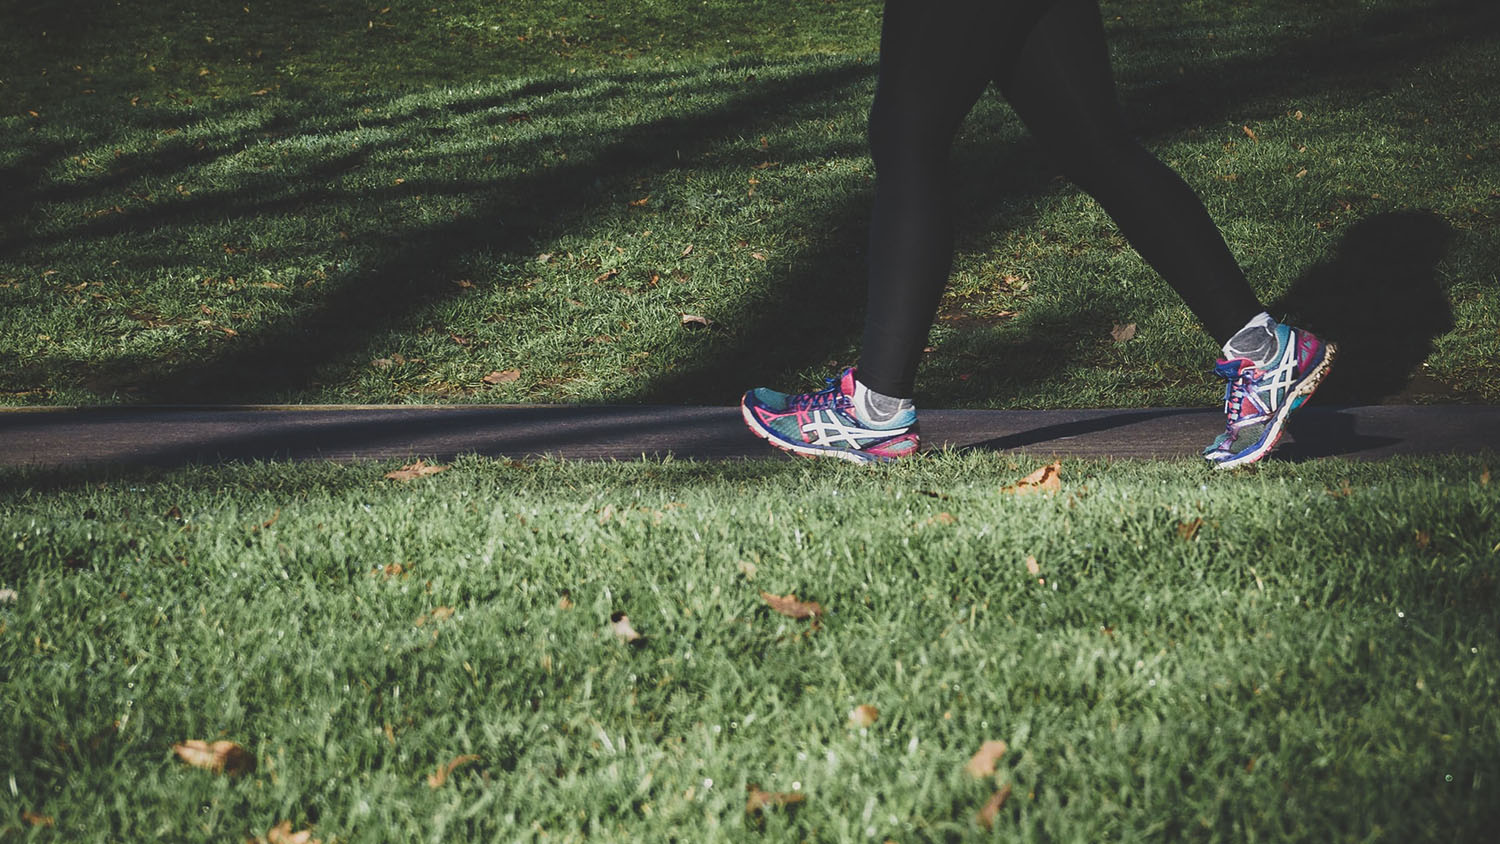 photo shows the legs of someone walking or running on a path in a park